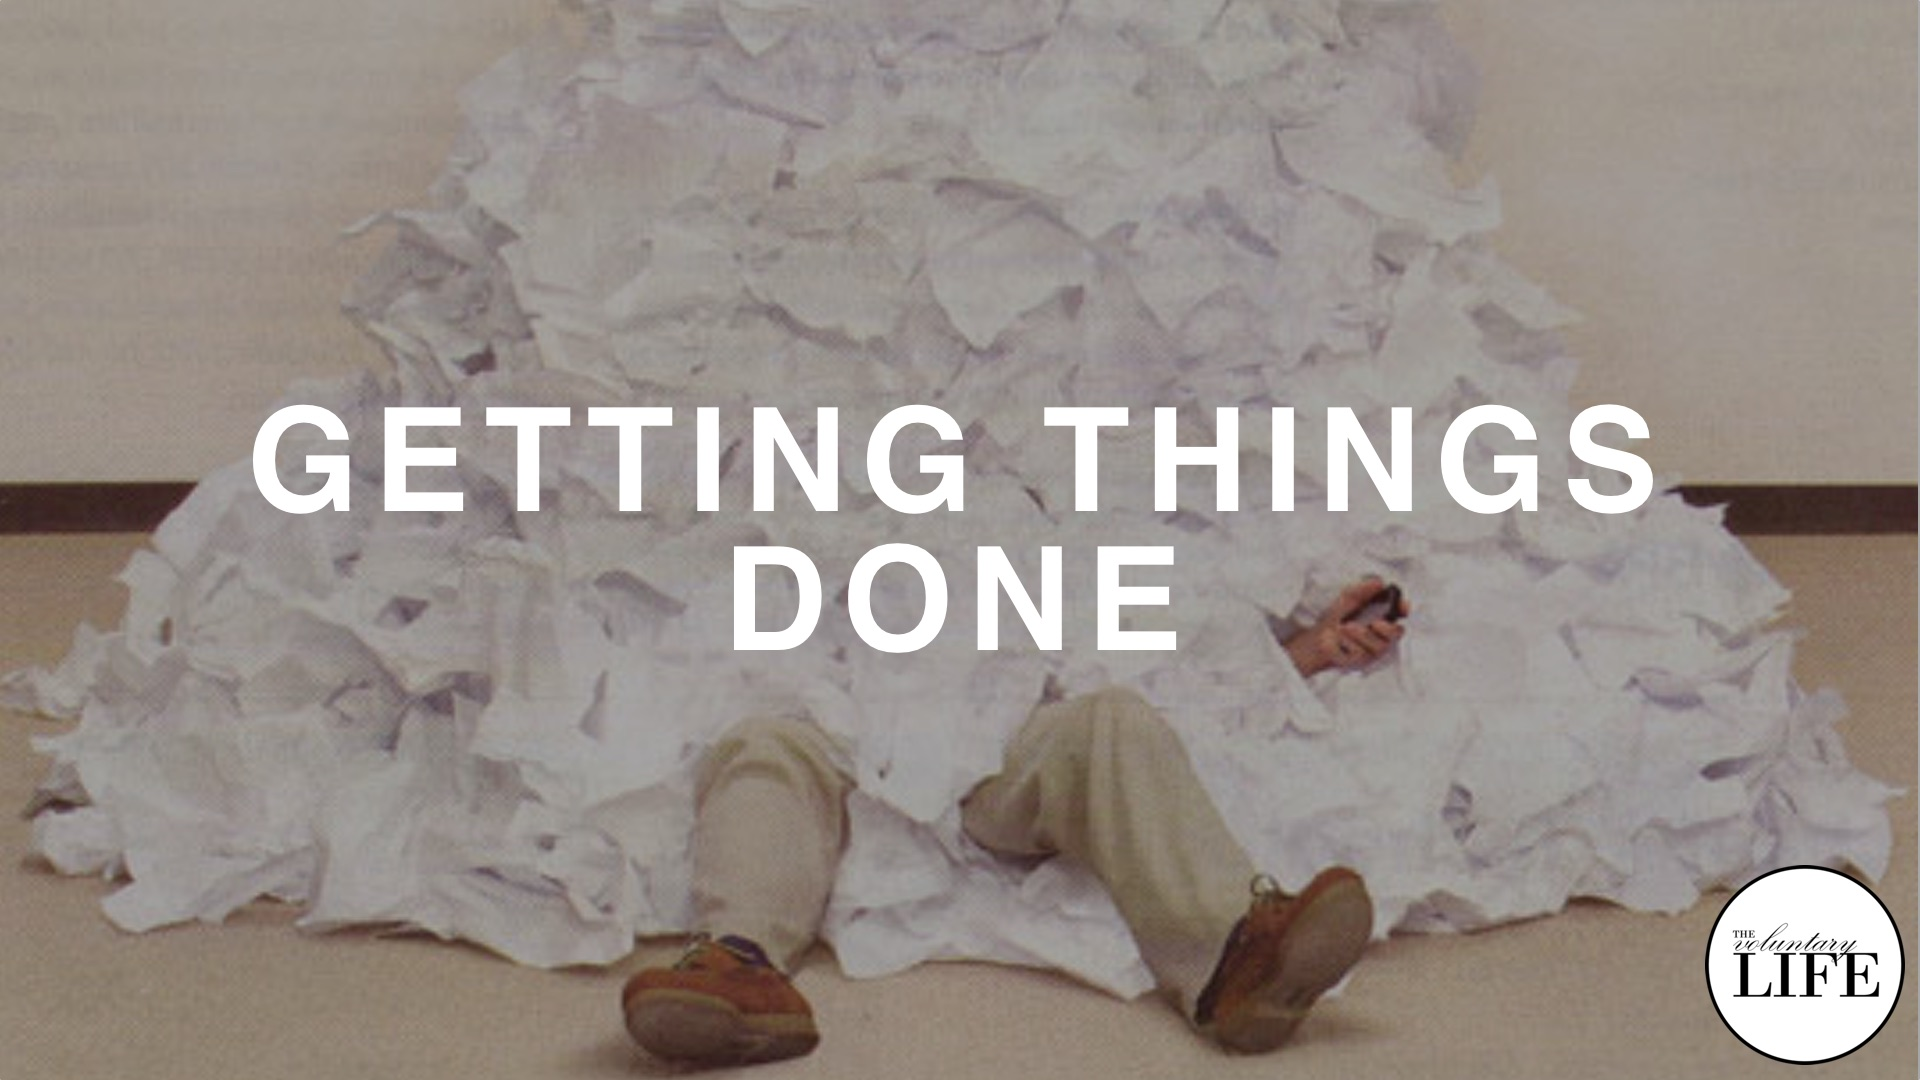 48 Entrepreneurship Part 6: Getting Things Done